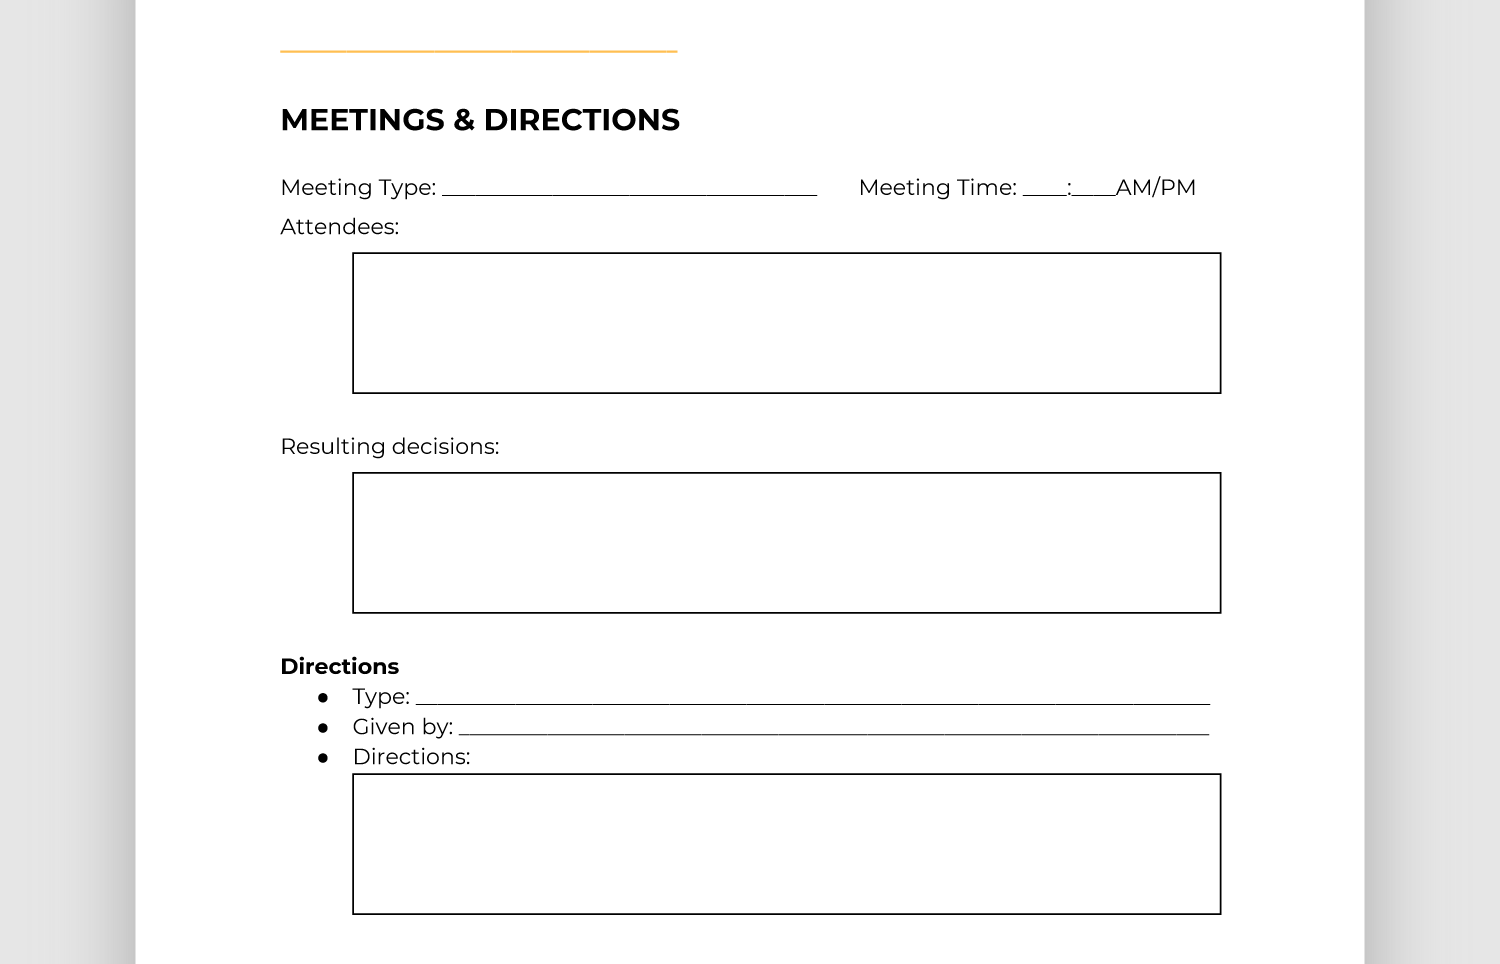 Screencap of meetings and directions section of report